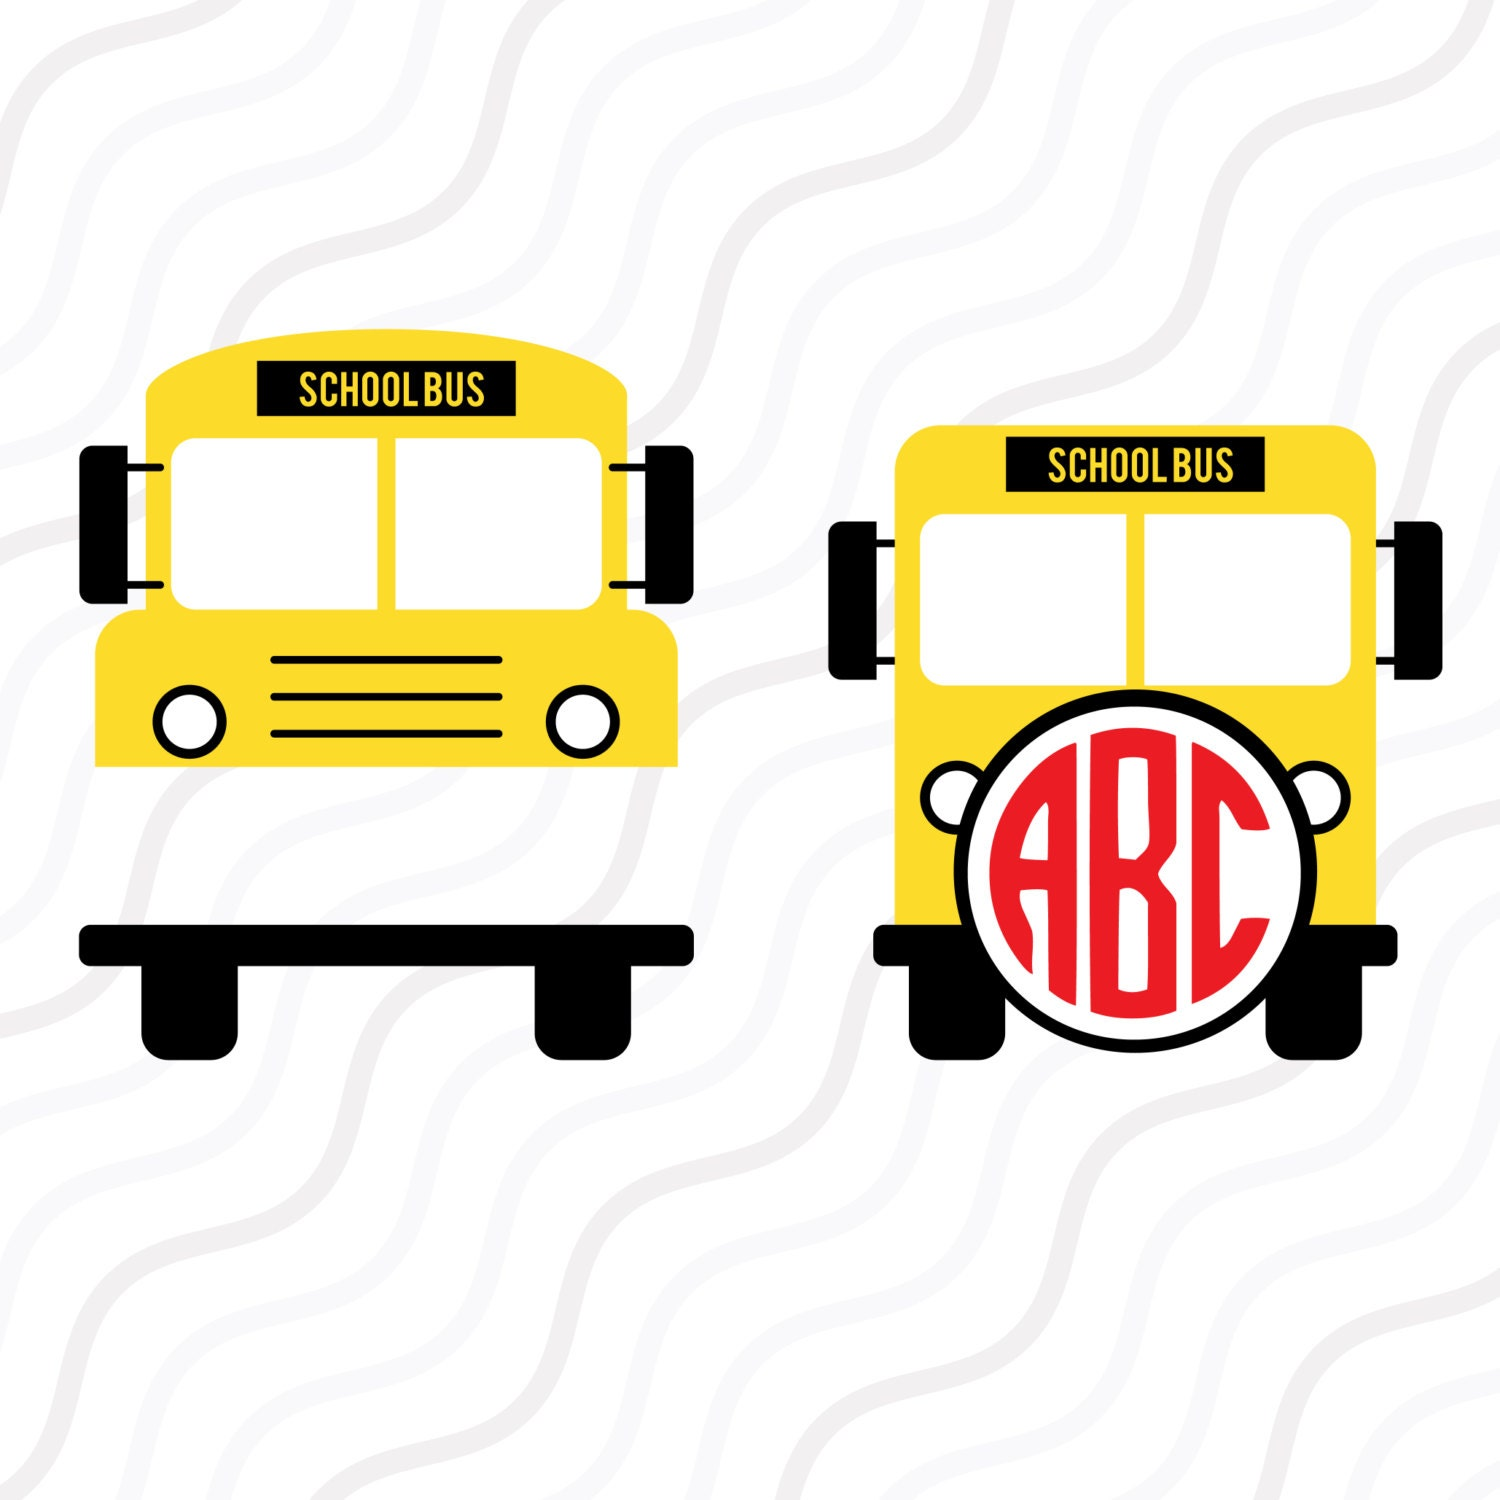 school bus svg back to school svgschool bus monogram svg cut rh etsy com School Bus Craft Template School Bus Craft Template